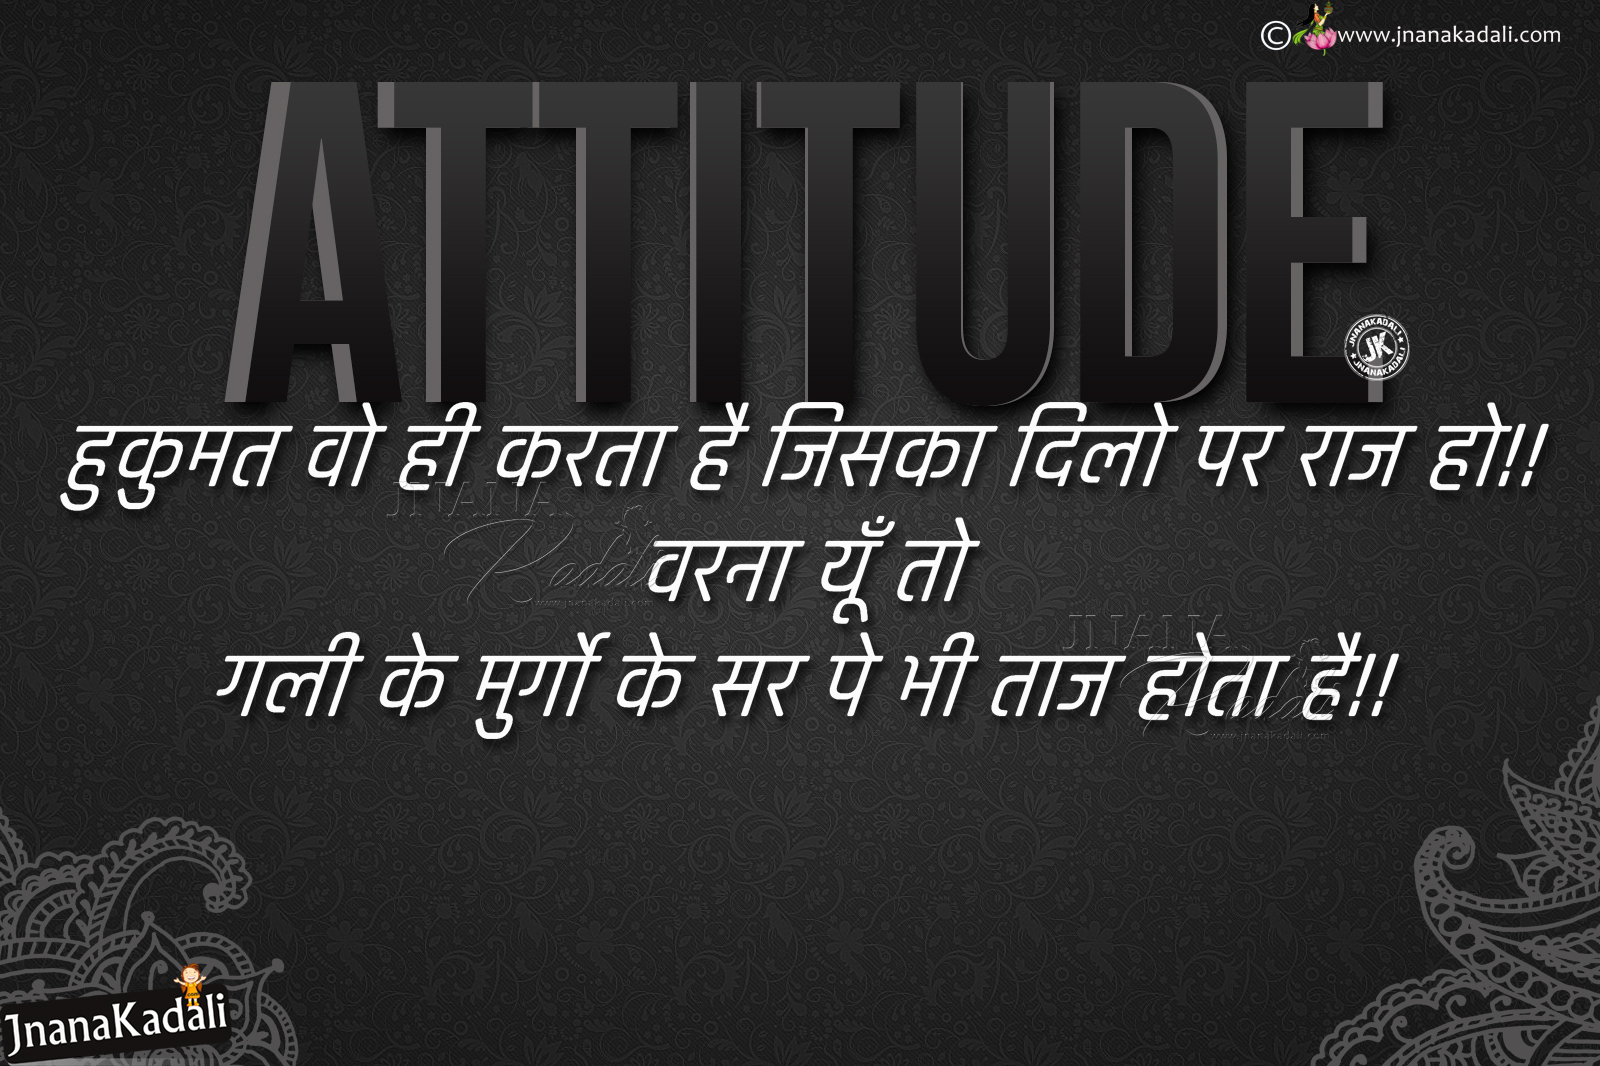 Attitude Quotes In Hindi Life Winning Quotes Messages In Hindi Jnana Kadali Com Telugu Quotes English Quotes Hindi Quotes Tamil Quotes Dharmasandehalu